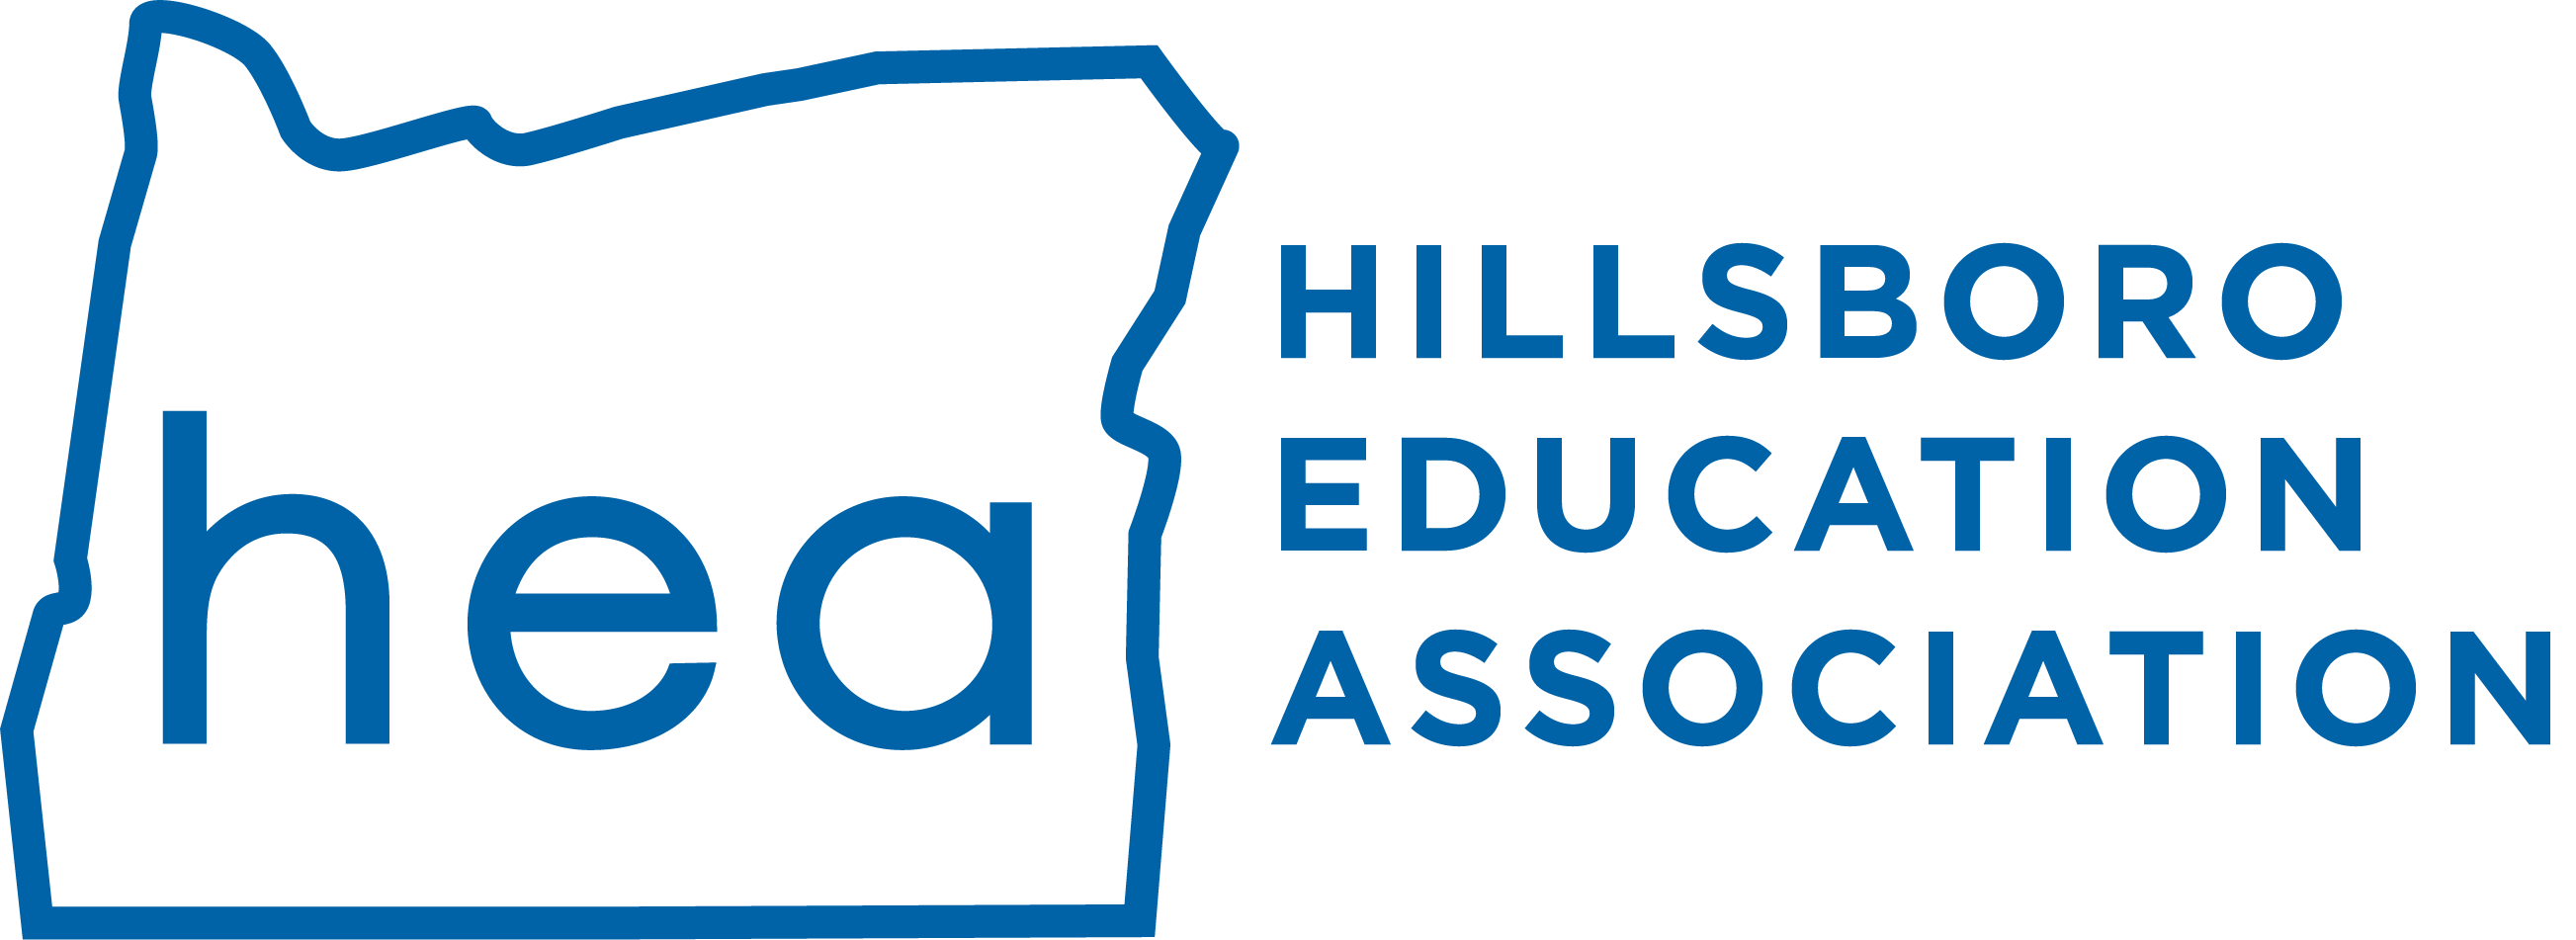 Hillsboro Education Association